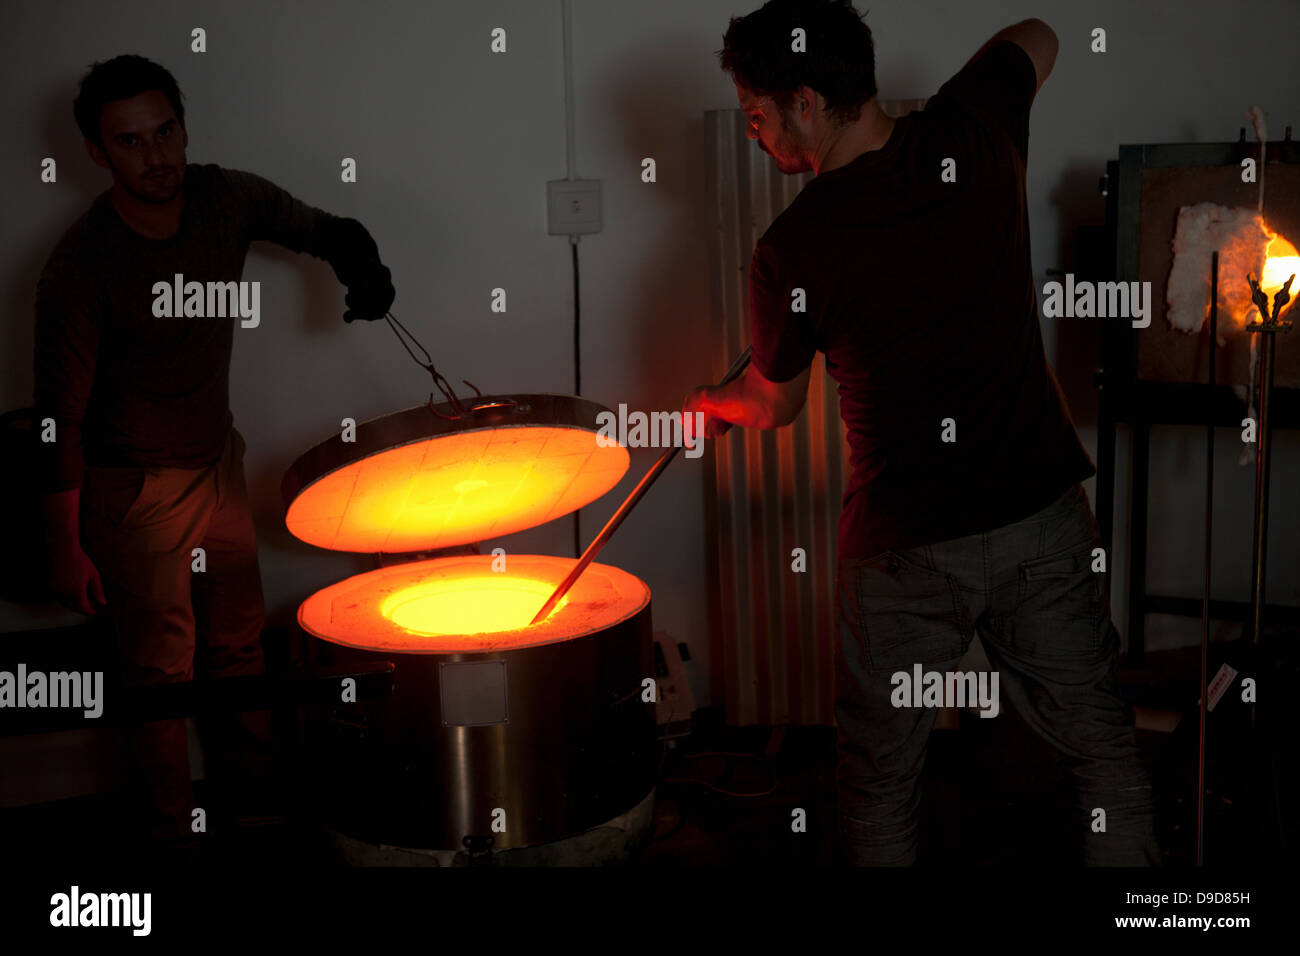 Two men working in glass factory - Stock Image